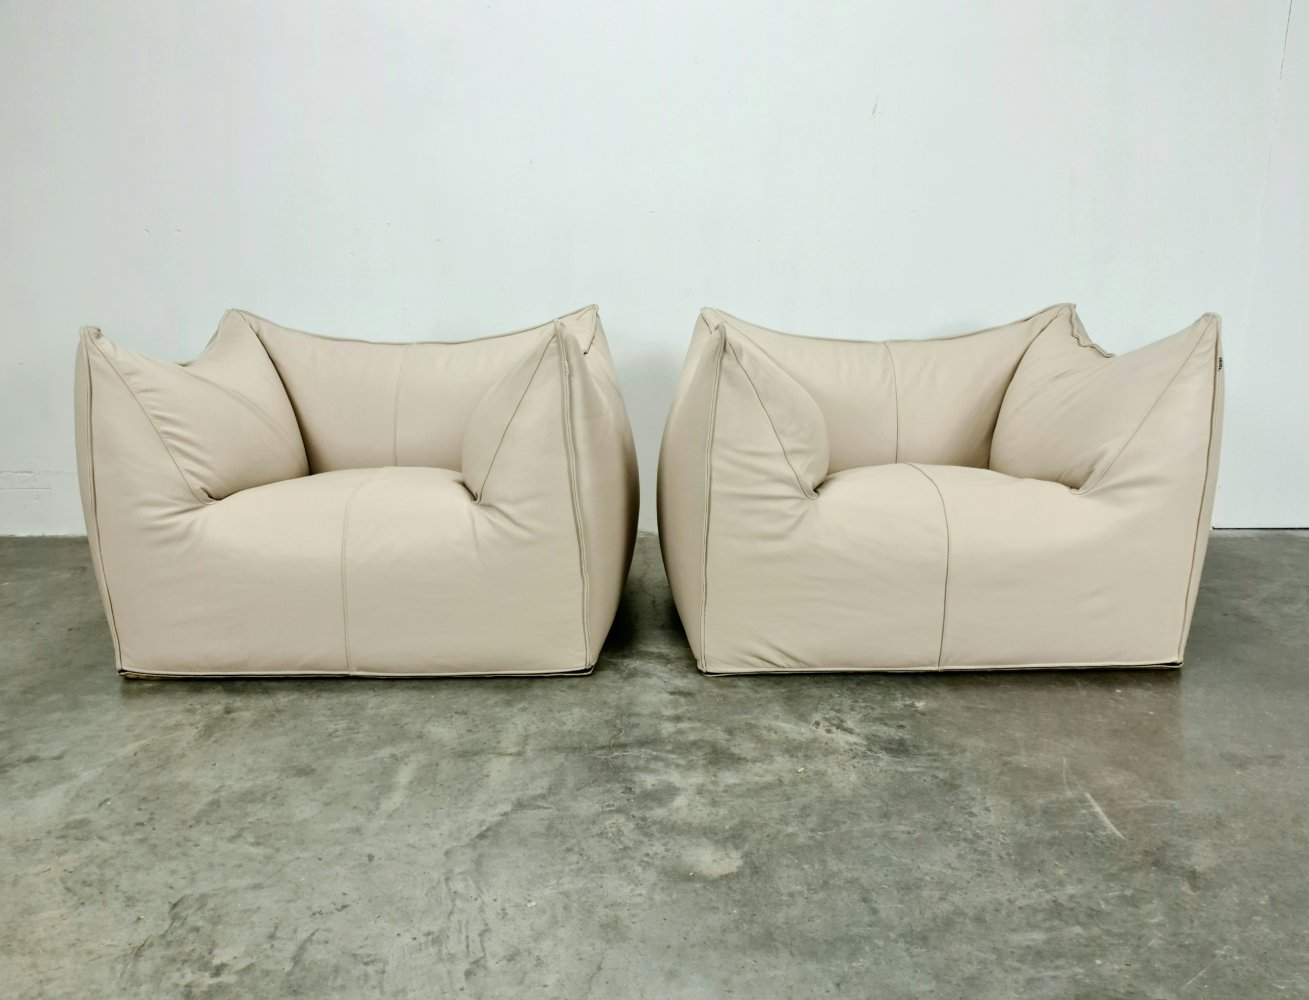 Set of 2 beige leather Le Bambole Chairs by Mario Bellini for B&B Italia, 1970s